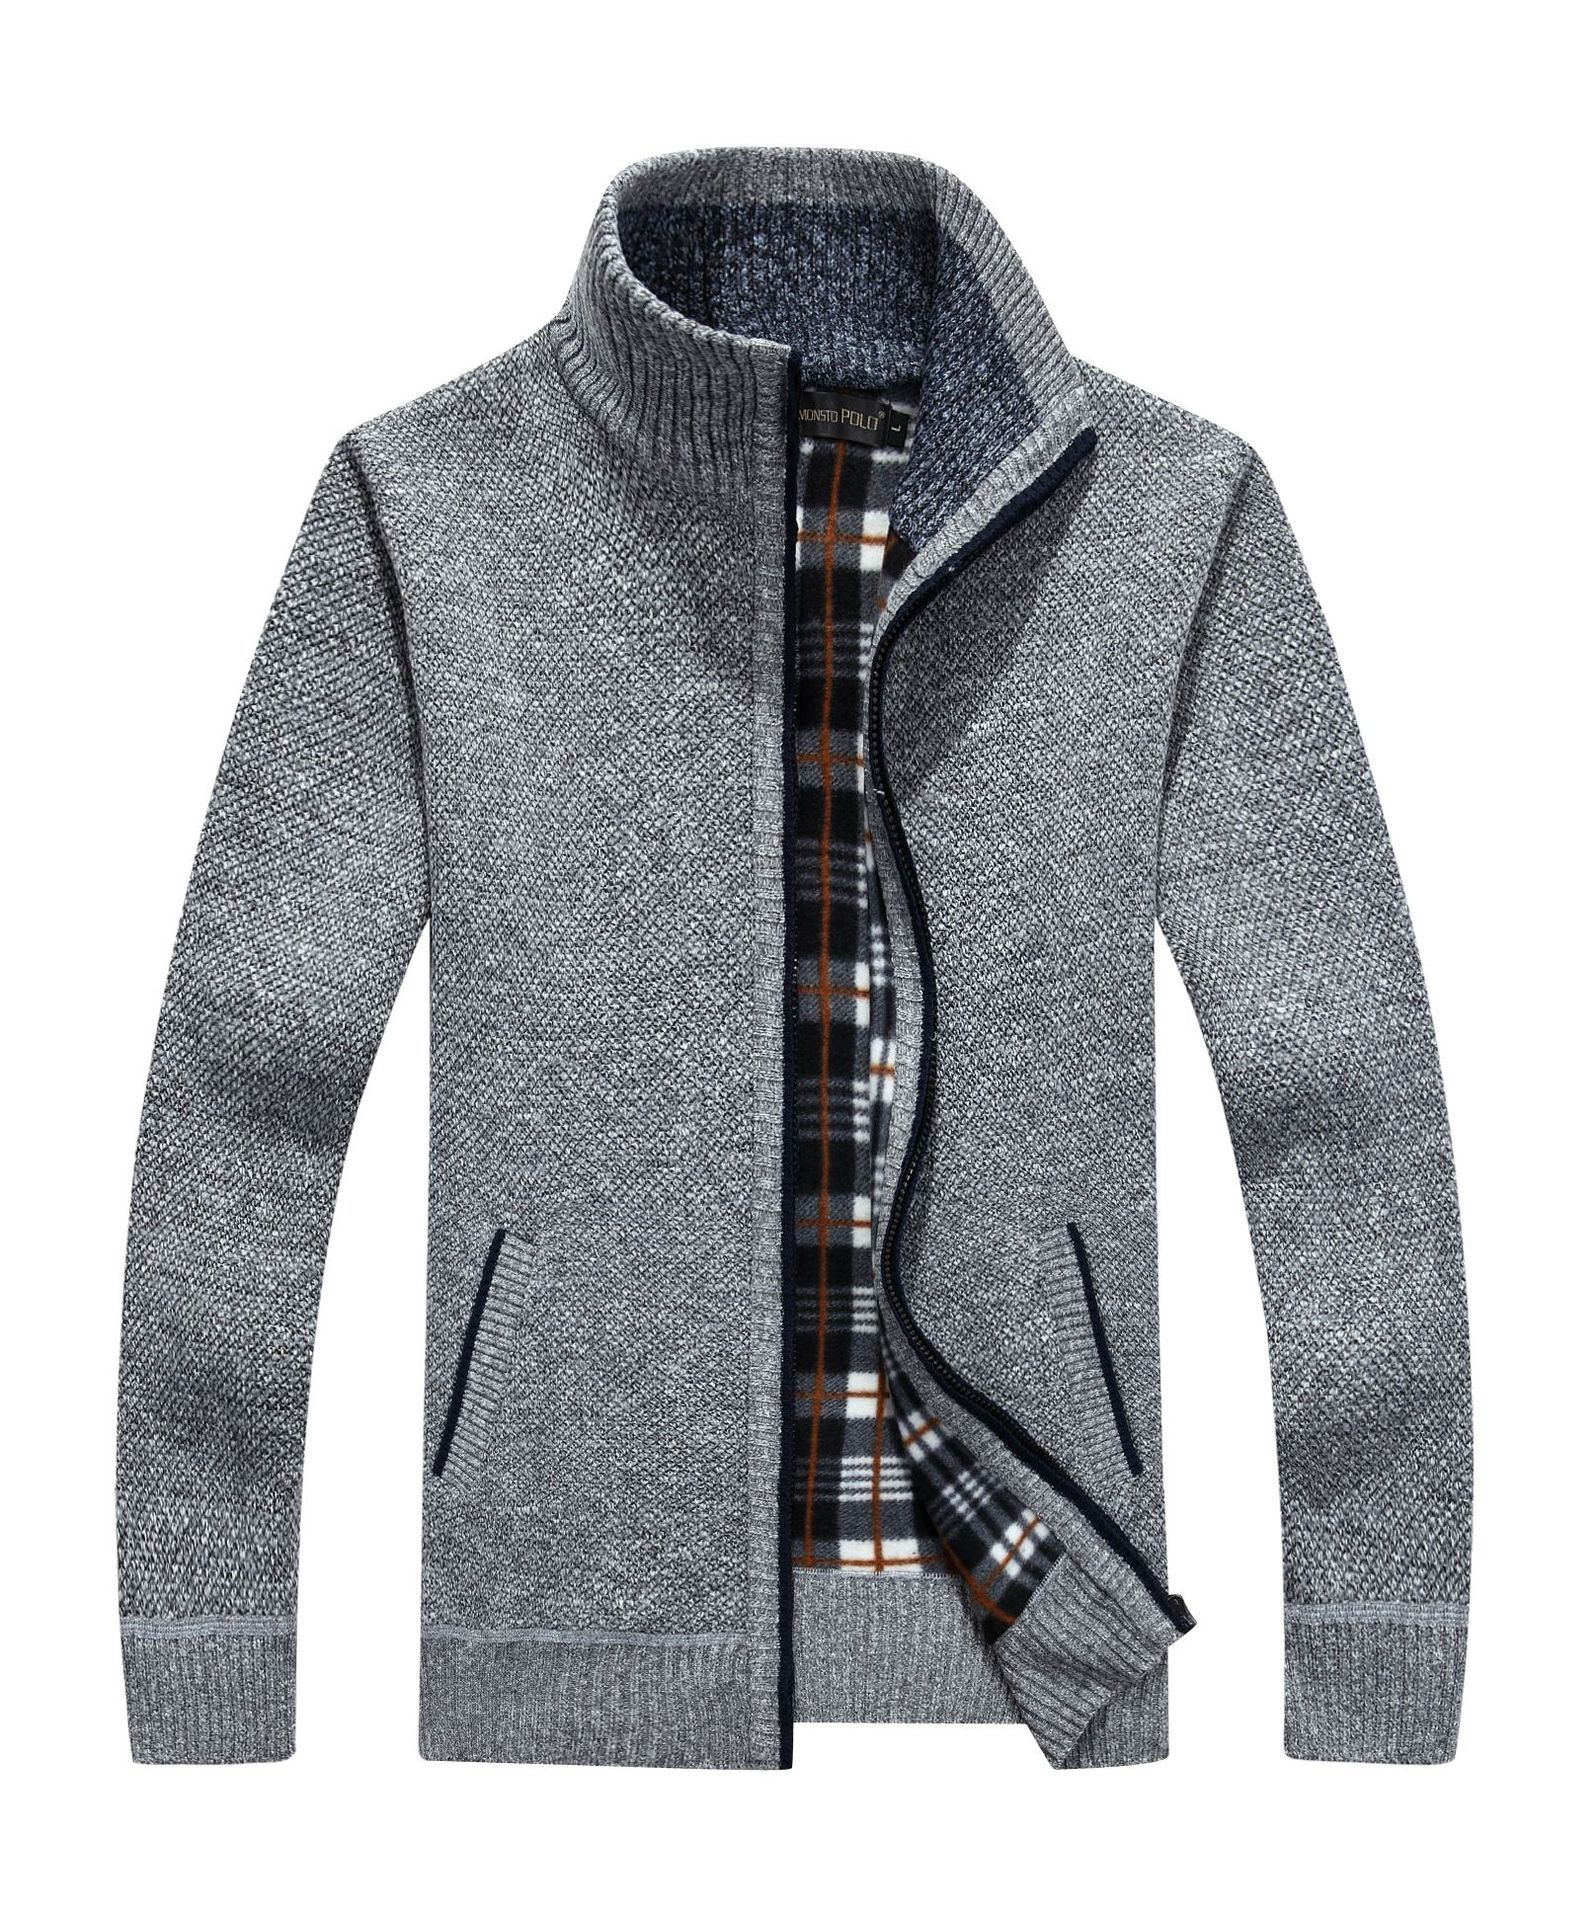 Thick Men's Knitted Sweater Coat Off White Long Sleeve Cardigan Fleece Full Zip Male Causal Plus Size Clothing For Autumn Spring 4